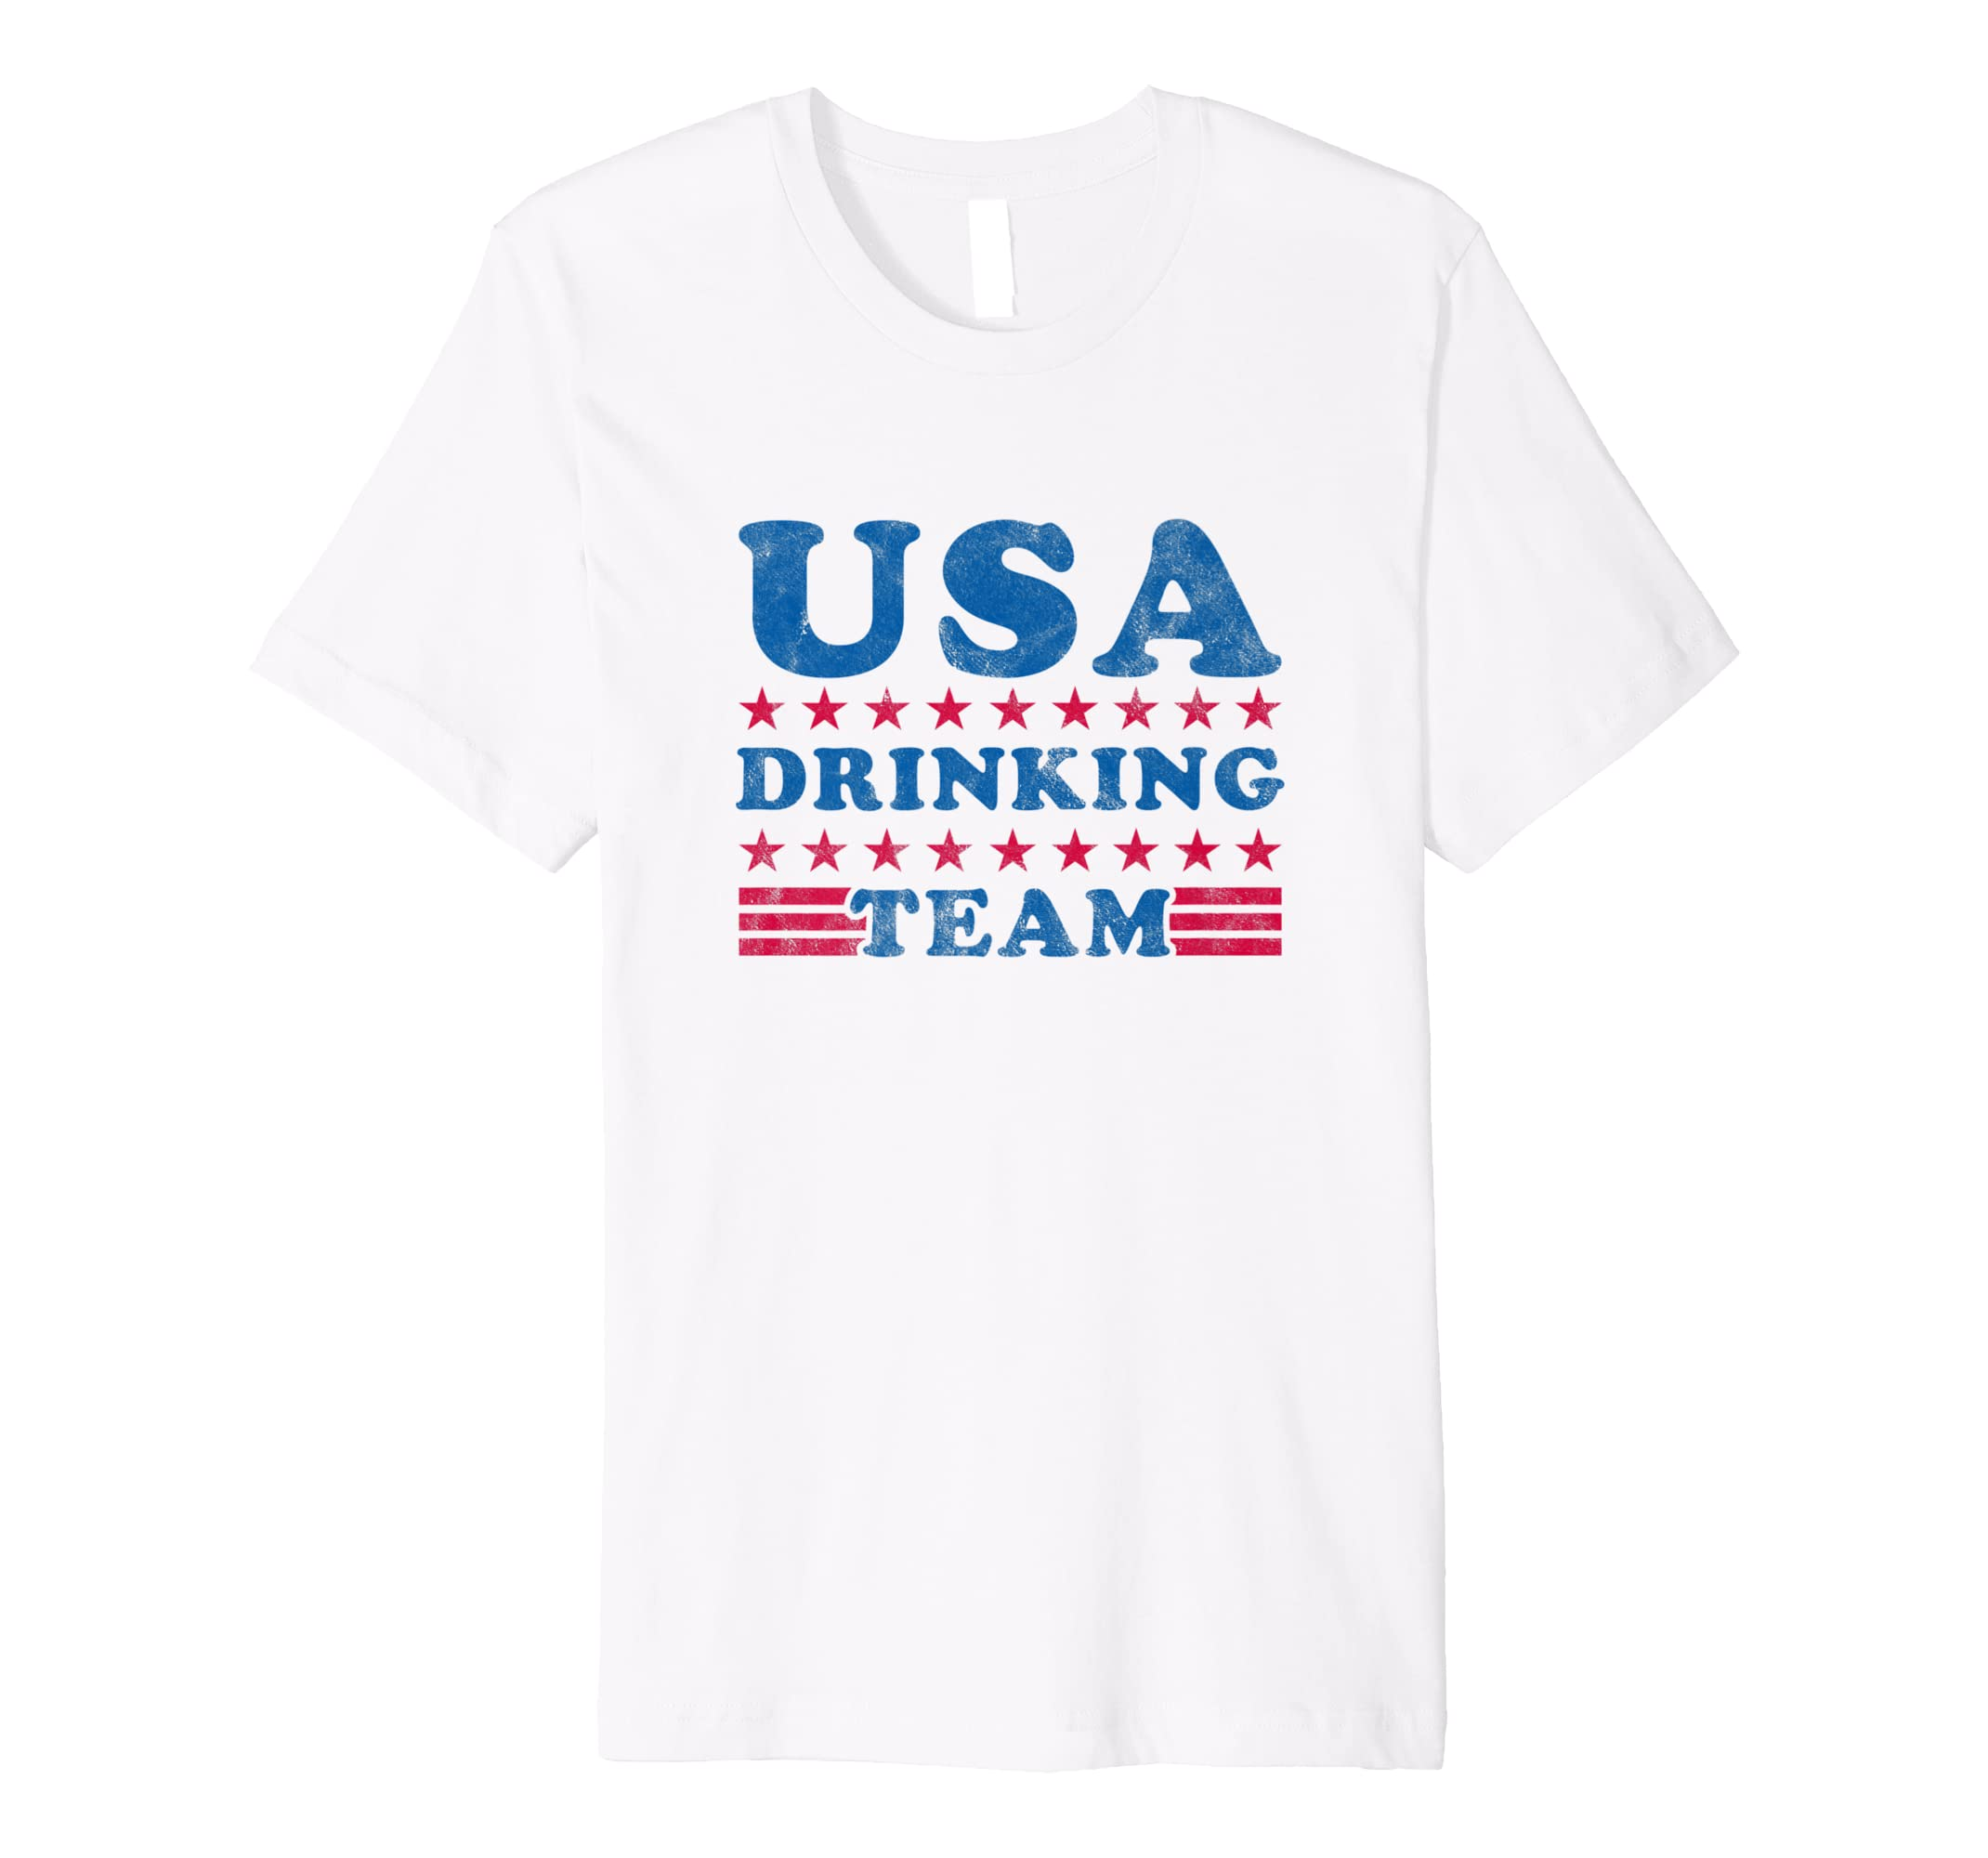 a806457cfc4ad Amazon.com  Independence Day Shirt USA Drinking Team 4th of July T-Shirt   Clothing